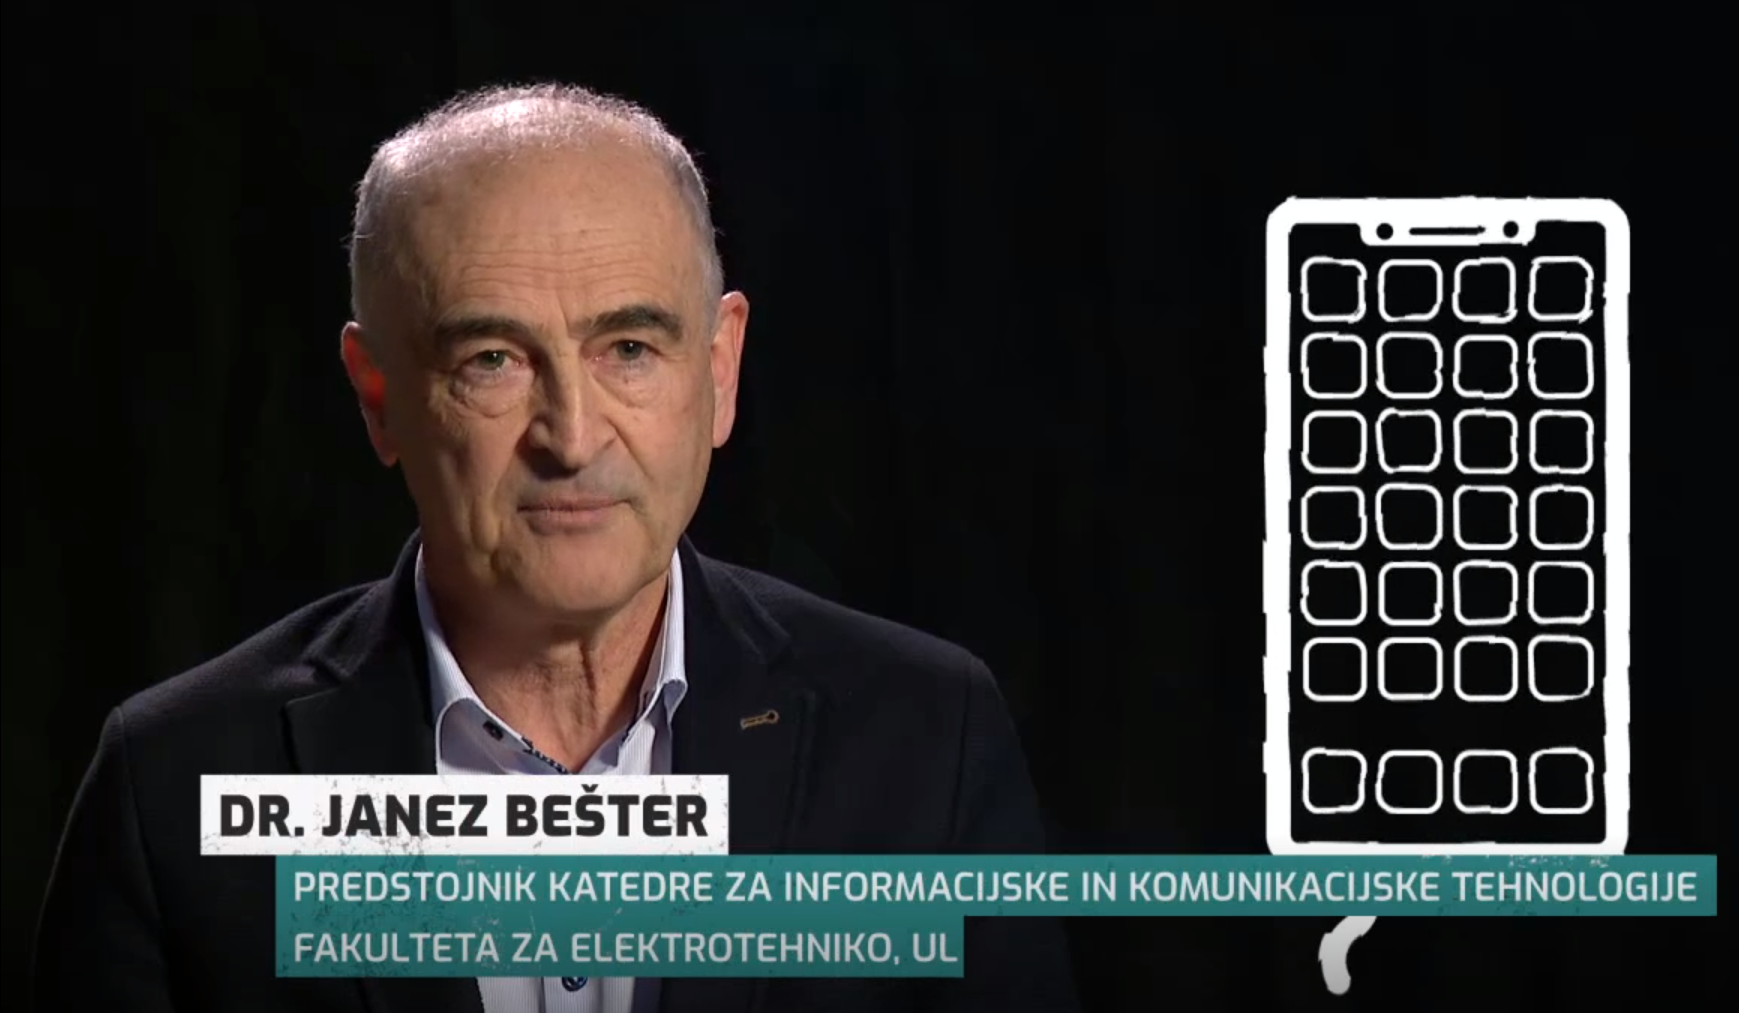 TV show 'Na kratko' about smart cities